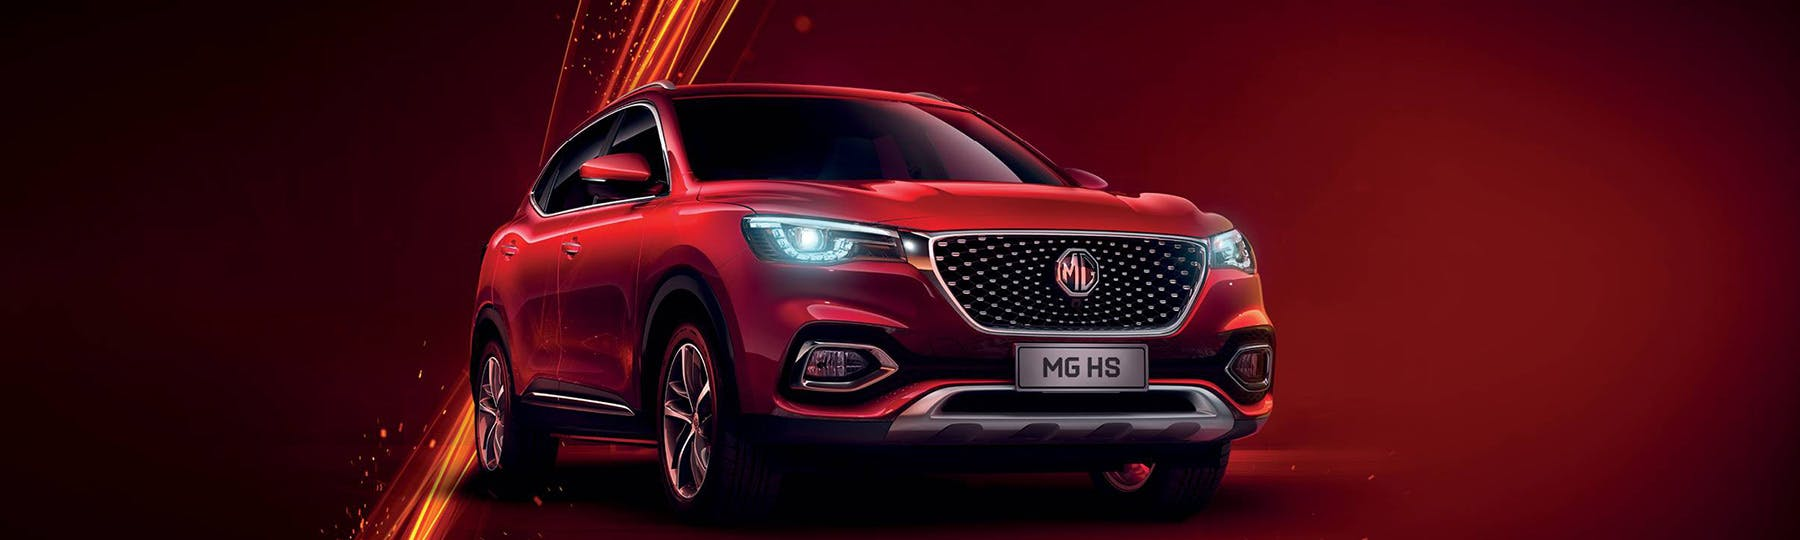 All New MG HS